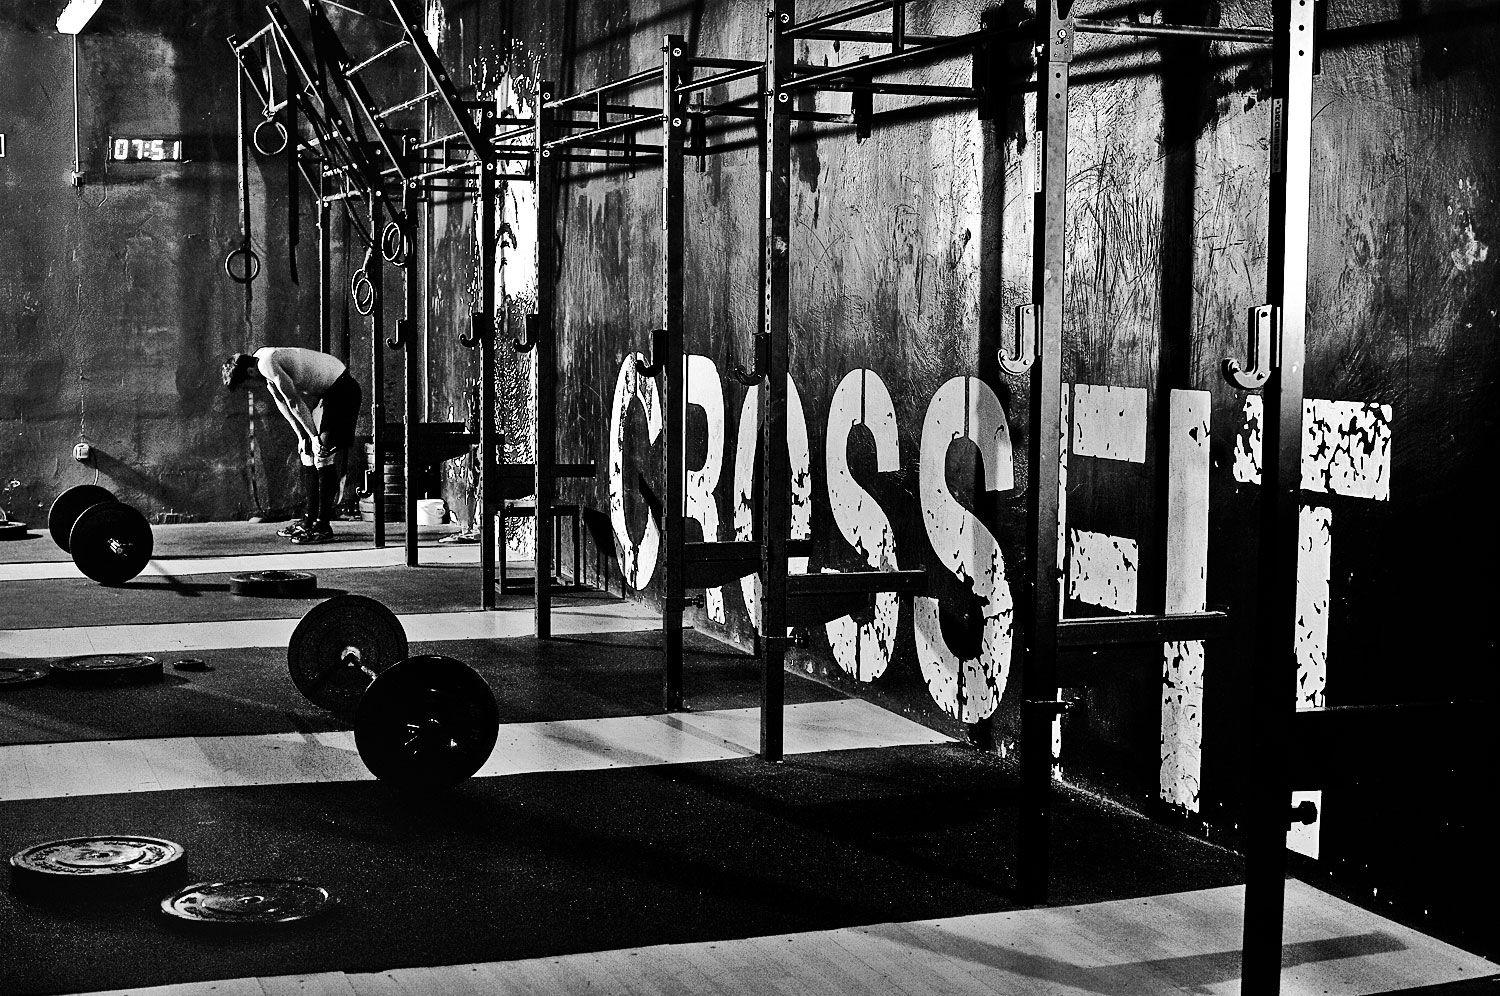 Crossfit Wallpapers Top Free Crossfit Backgrounds Wallpaperaccess